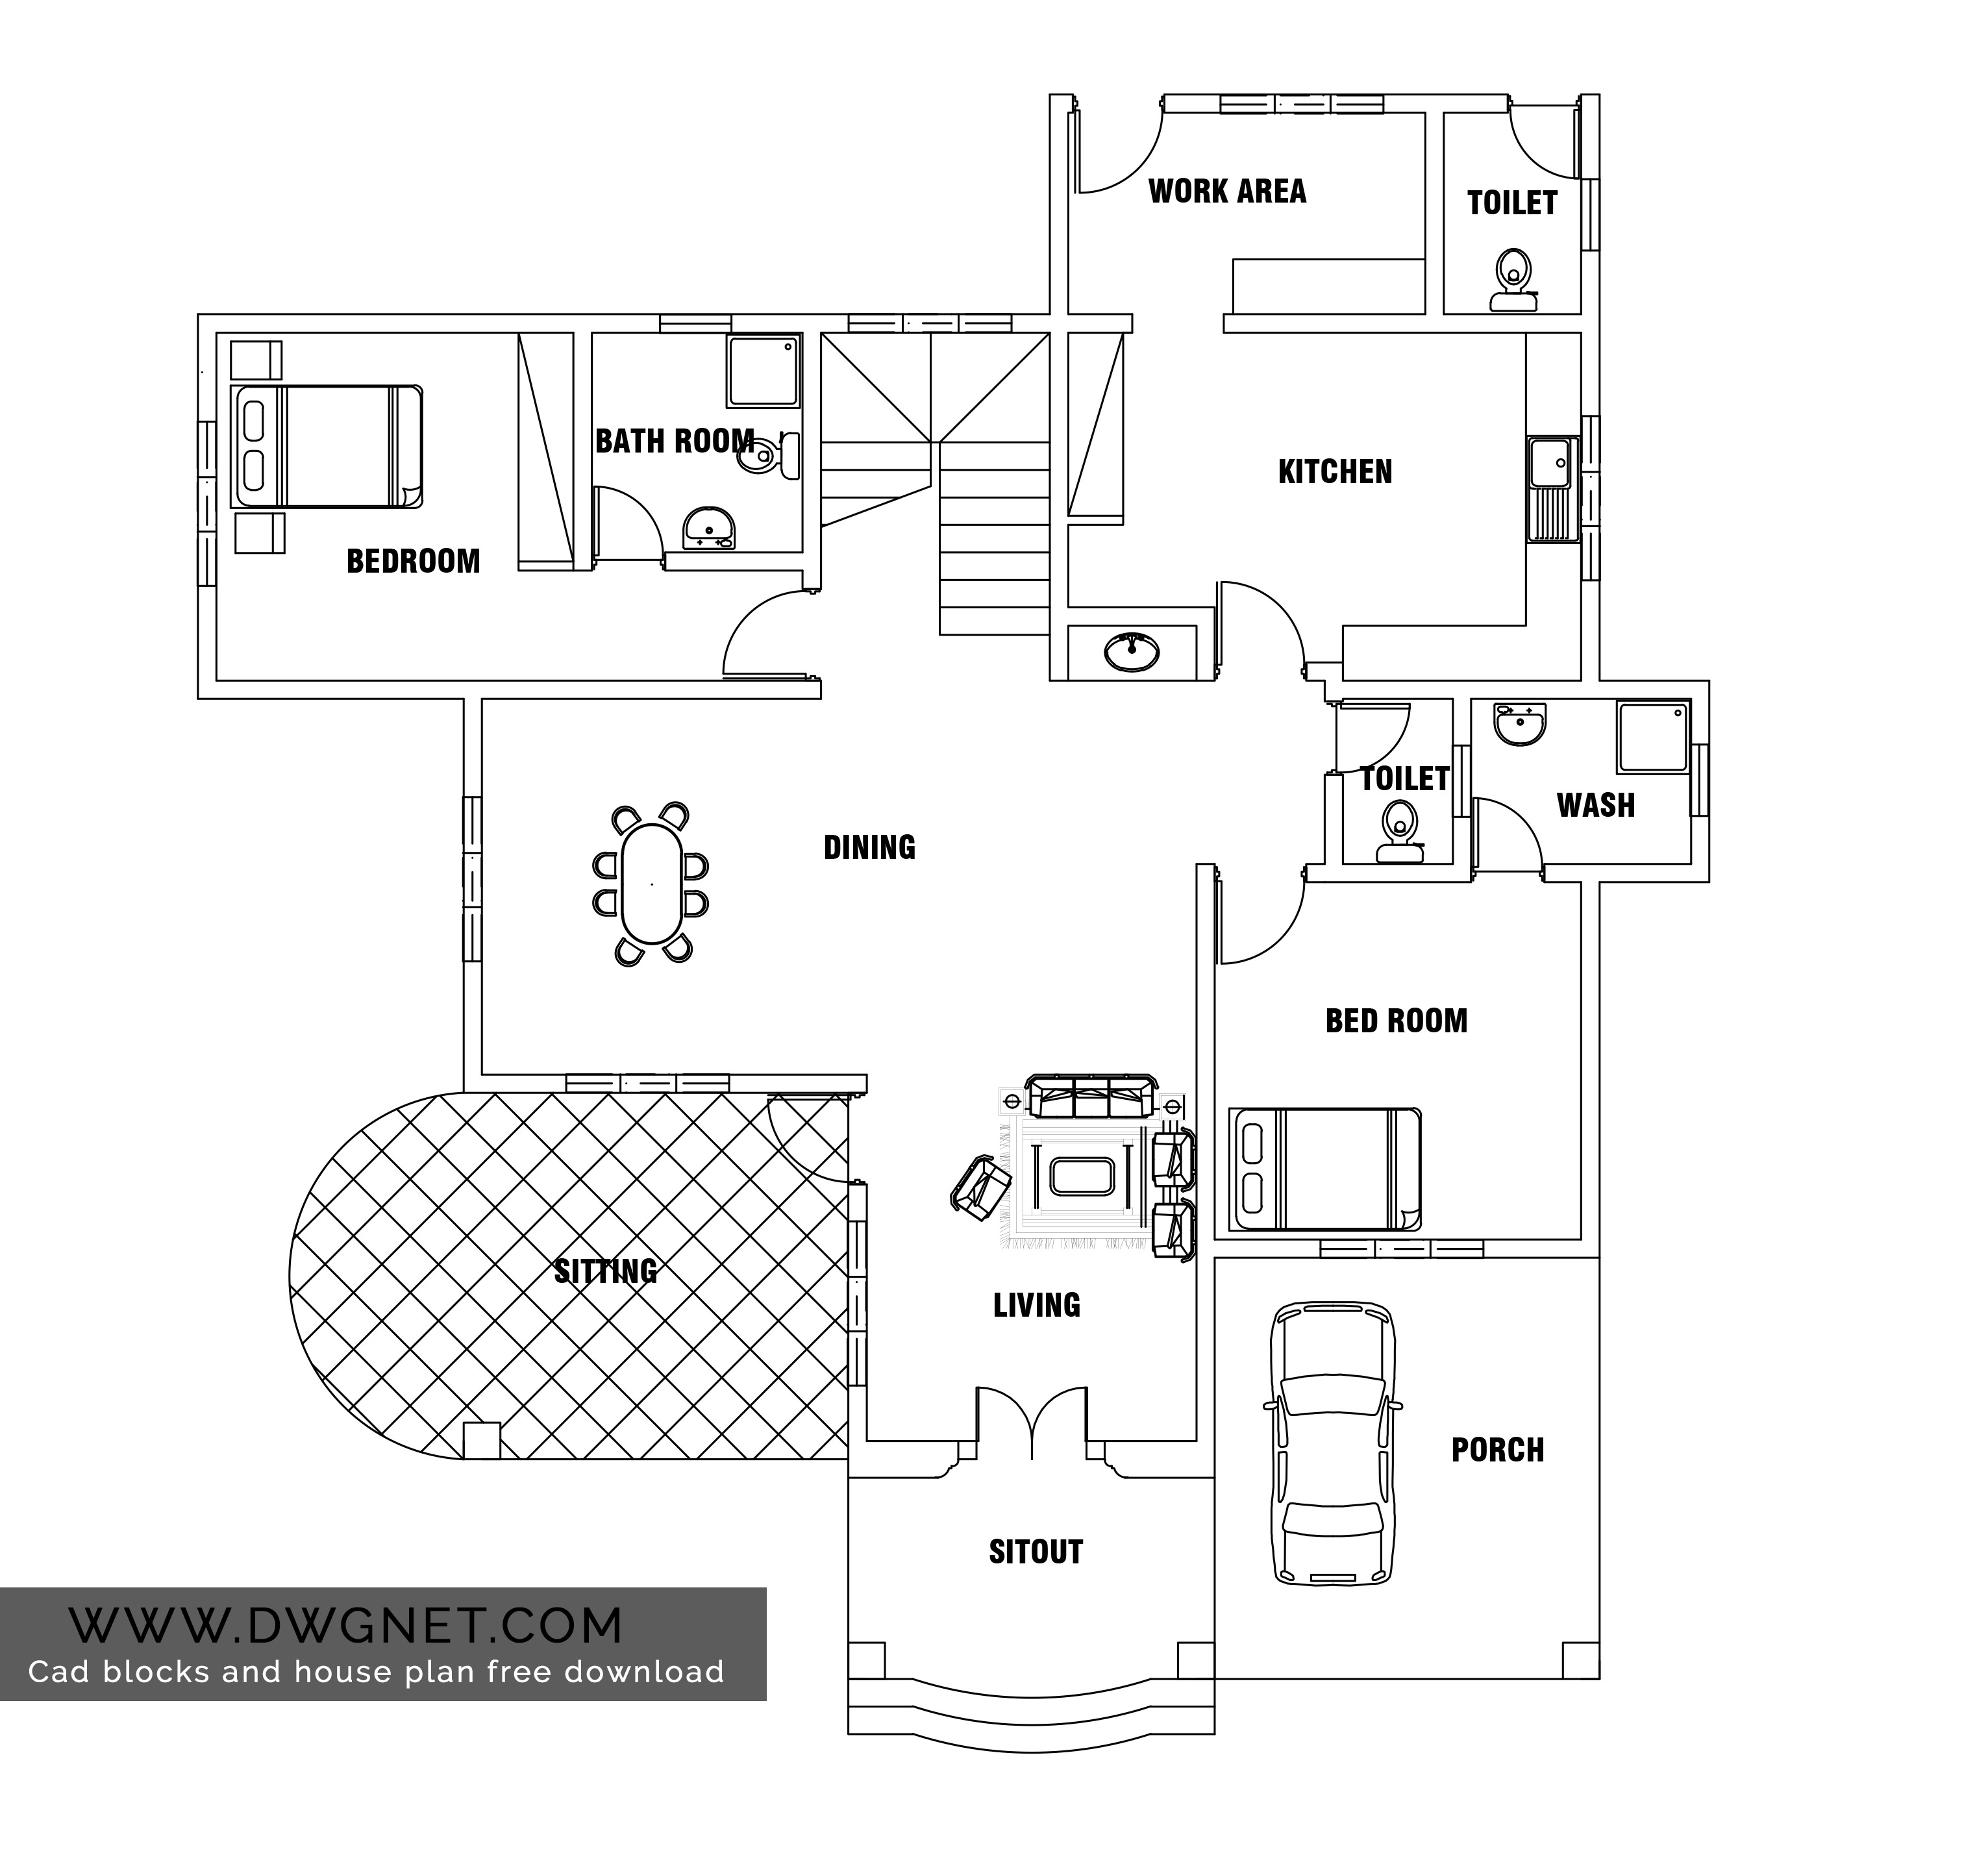 Phenomenal House Plans Dwg Free Autocad House Plans Dwg Garden Home Great Largest Home Design Picture Inspirations Pitcheantrous